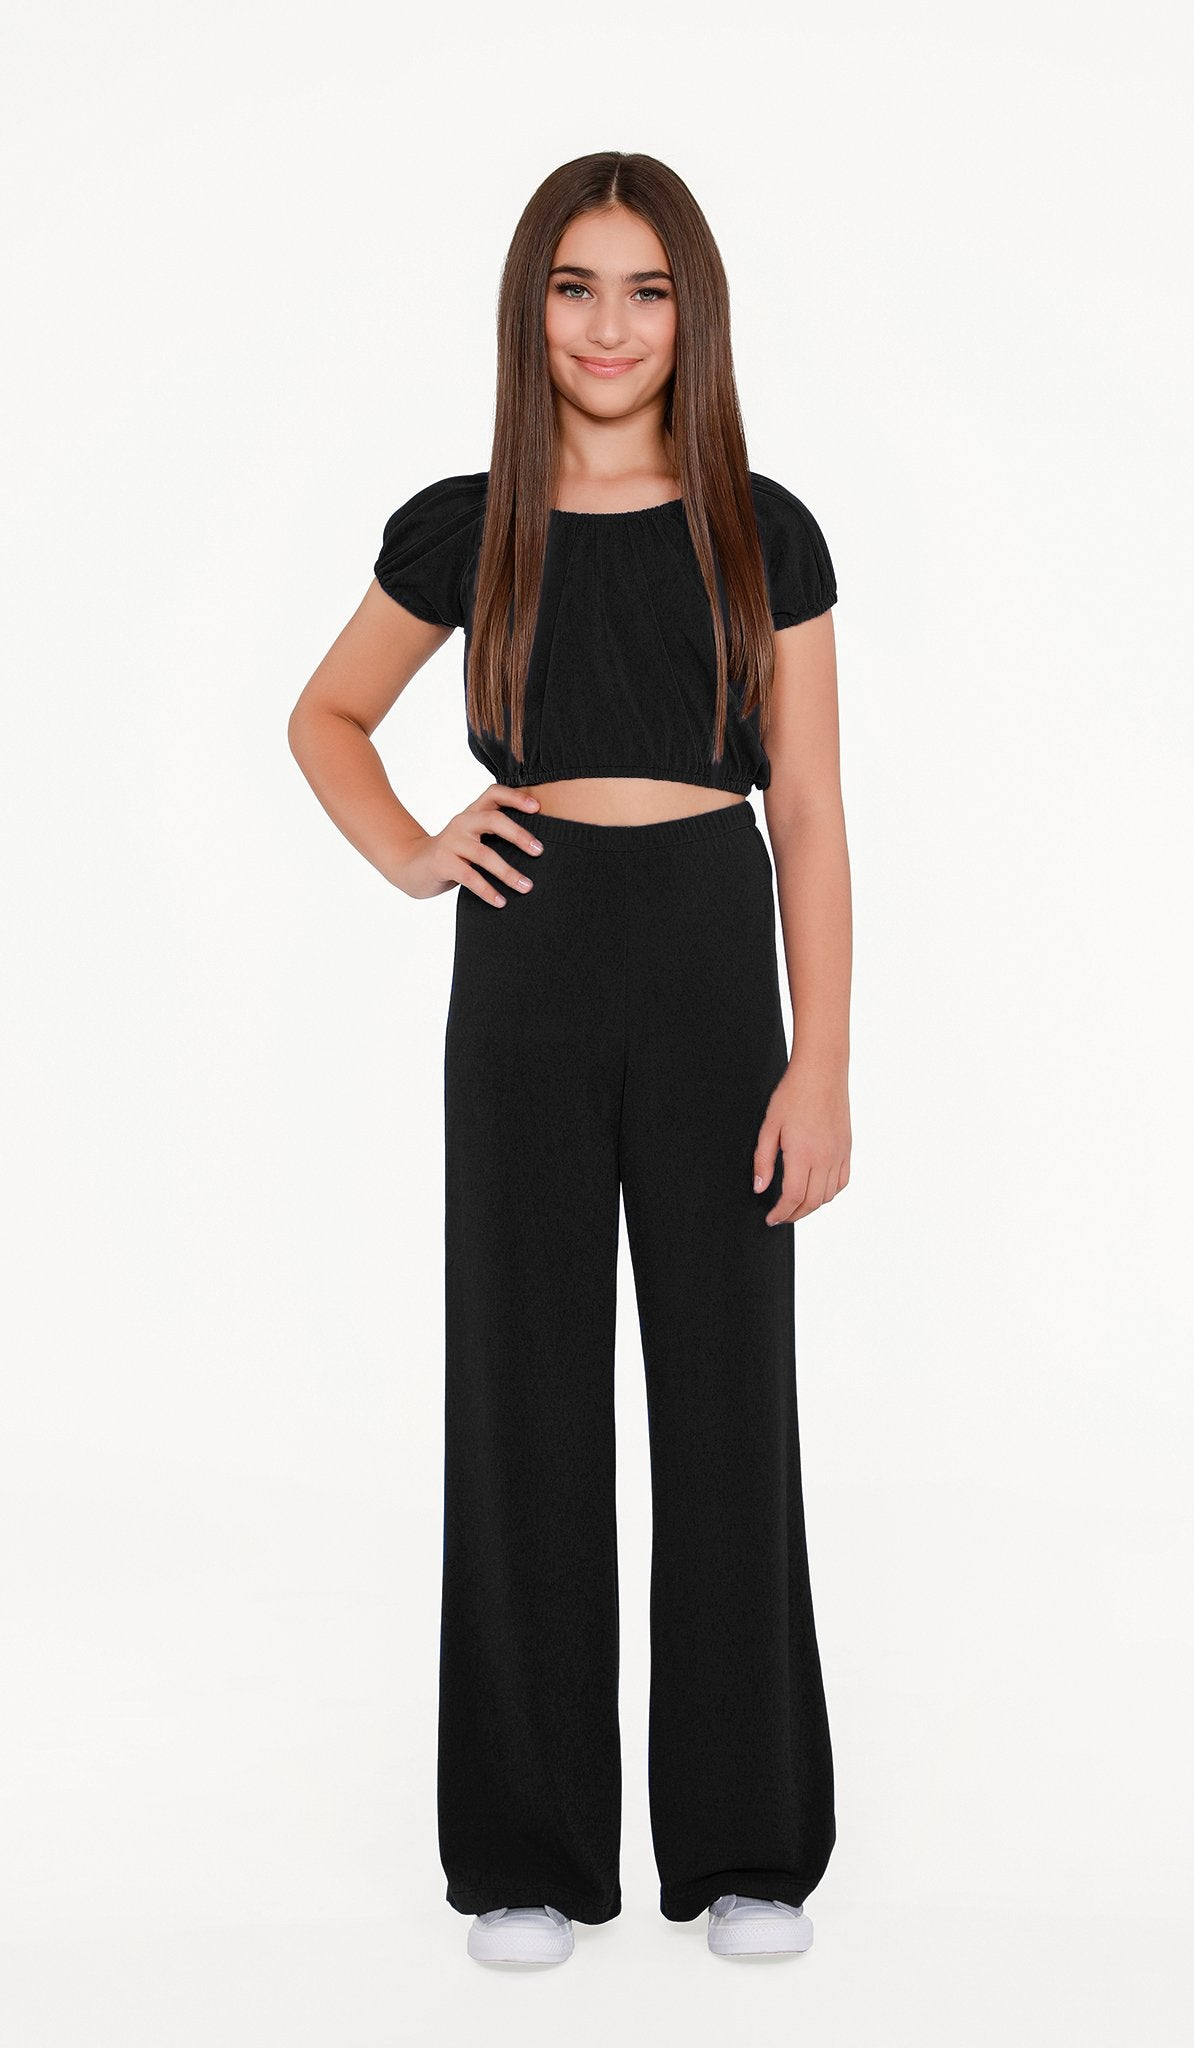 The Sally Miller Carrie Pant Set - Black stretch knit peasant top and wide leg cropped pant set | Event & Party Dresses for Tween Girls & Juniors | Weddings Dresses, Bat Mitzvah Dresses, Sweet Sixteen Dresses, Graduation Dresses, Birthday Party Dresses, Bar Mitzvah Dresses, Cotillion Dresses